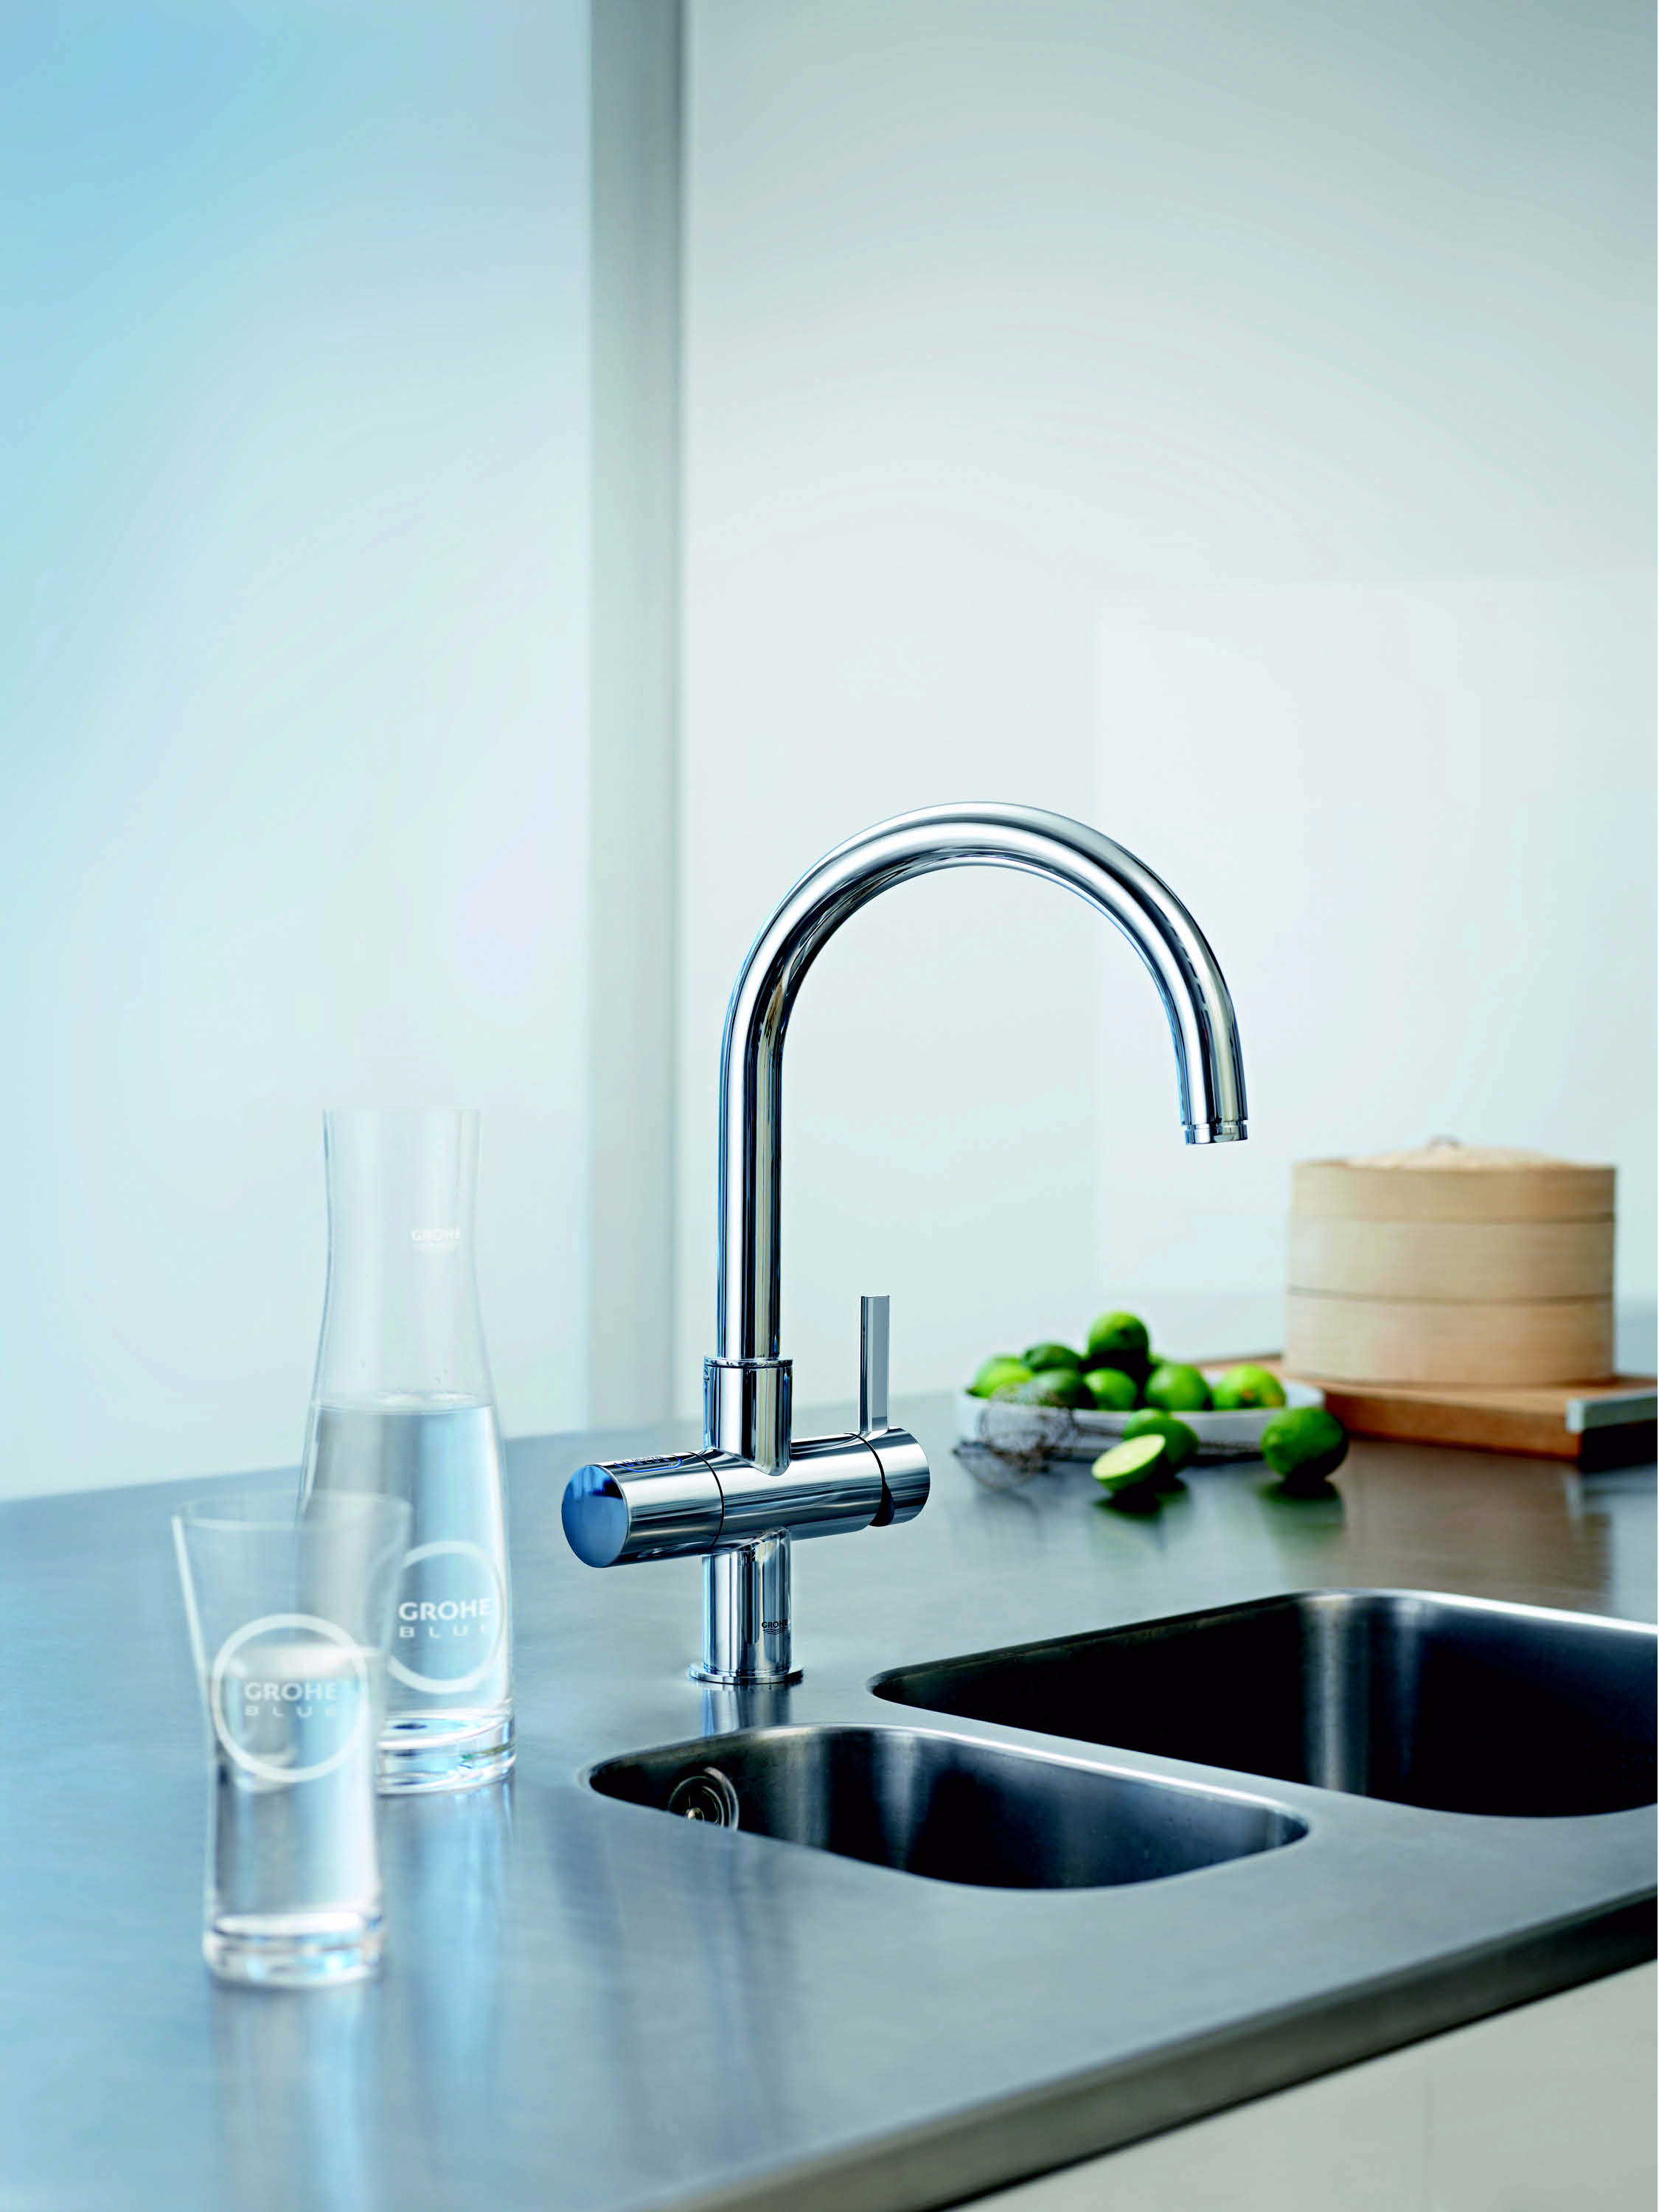 extraordinary unique best and com htsrec out collection faucets anything repair grohe white sinks designer pull photos panemkitchen clearance parts of kitchen pictures